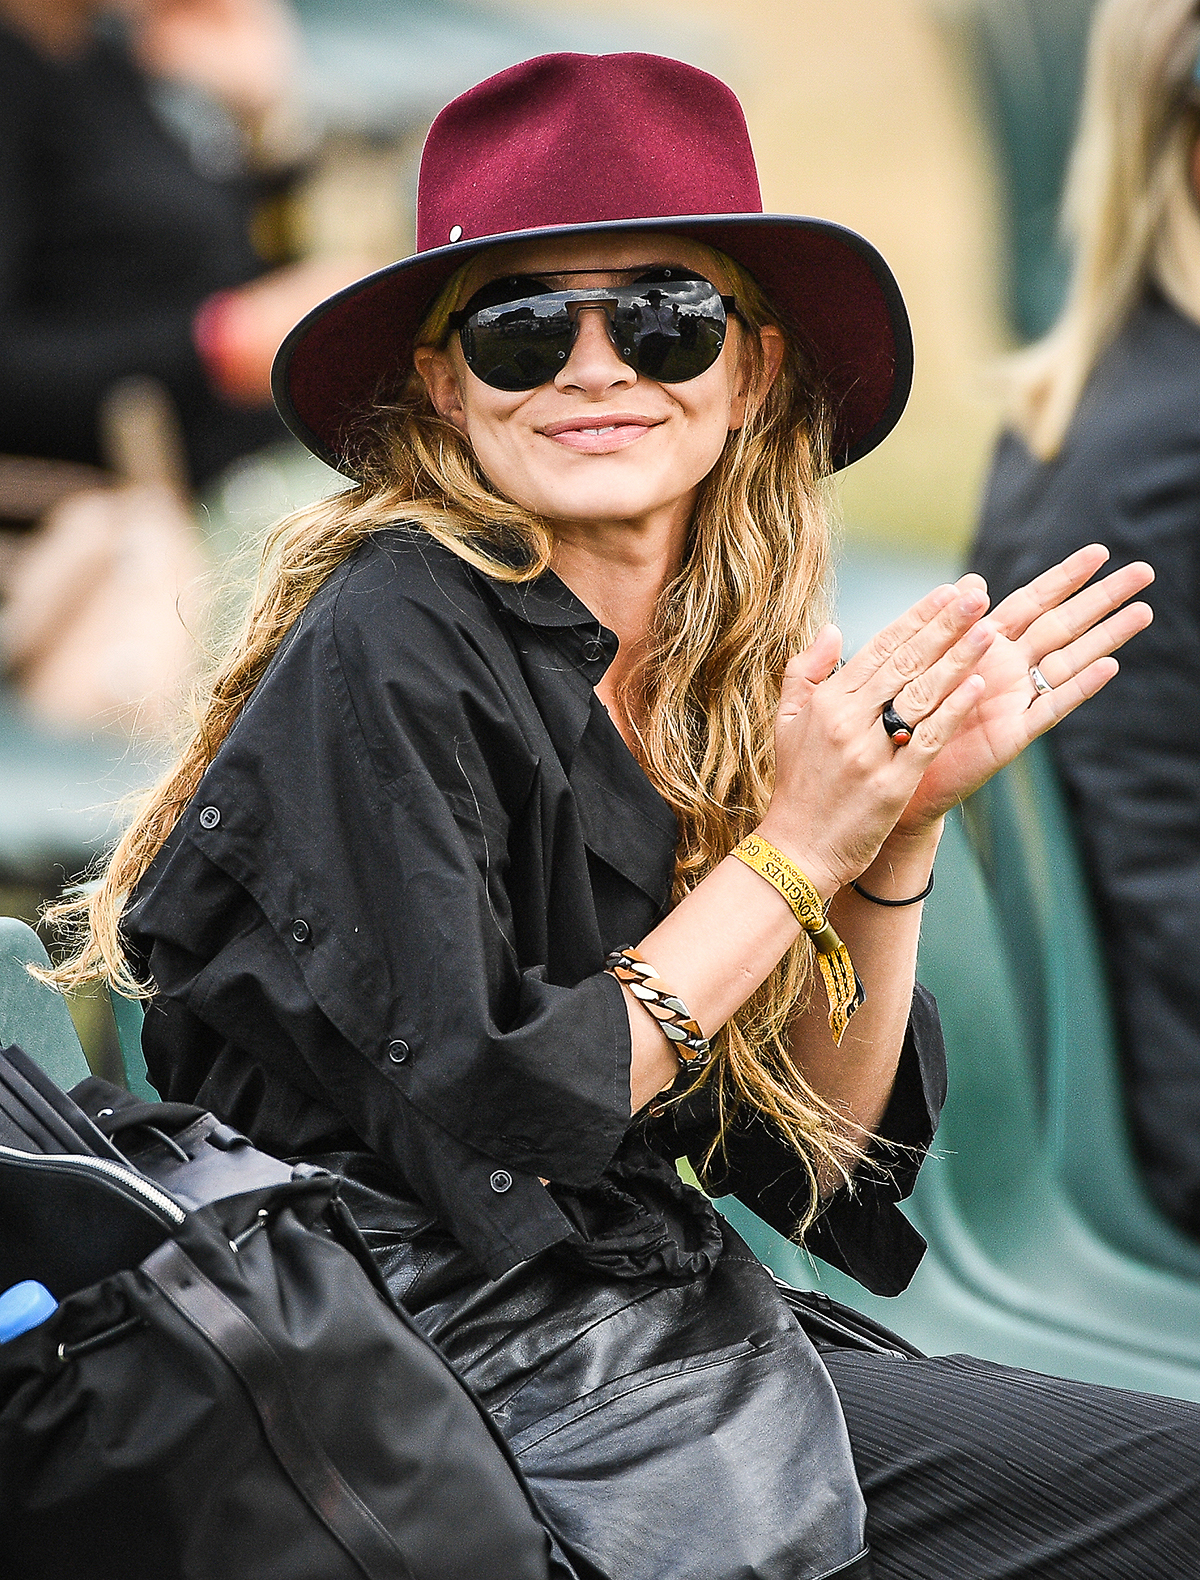 Ashley Olsen seen on a break, and smoking a cigarette after riding Fatum during the Longines Global Champions Tour at Chantilly. Twin sister Ashley Olsen was seen later in the afternoon wearing a dark red hat and matching sunglasses